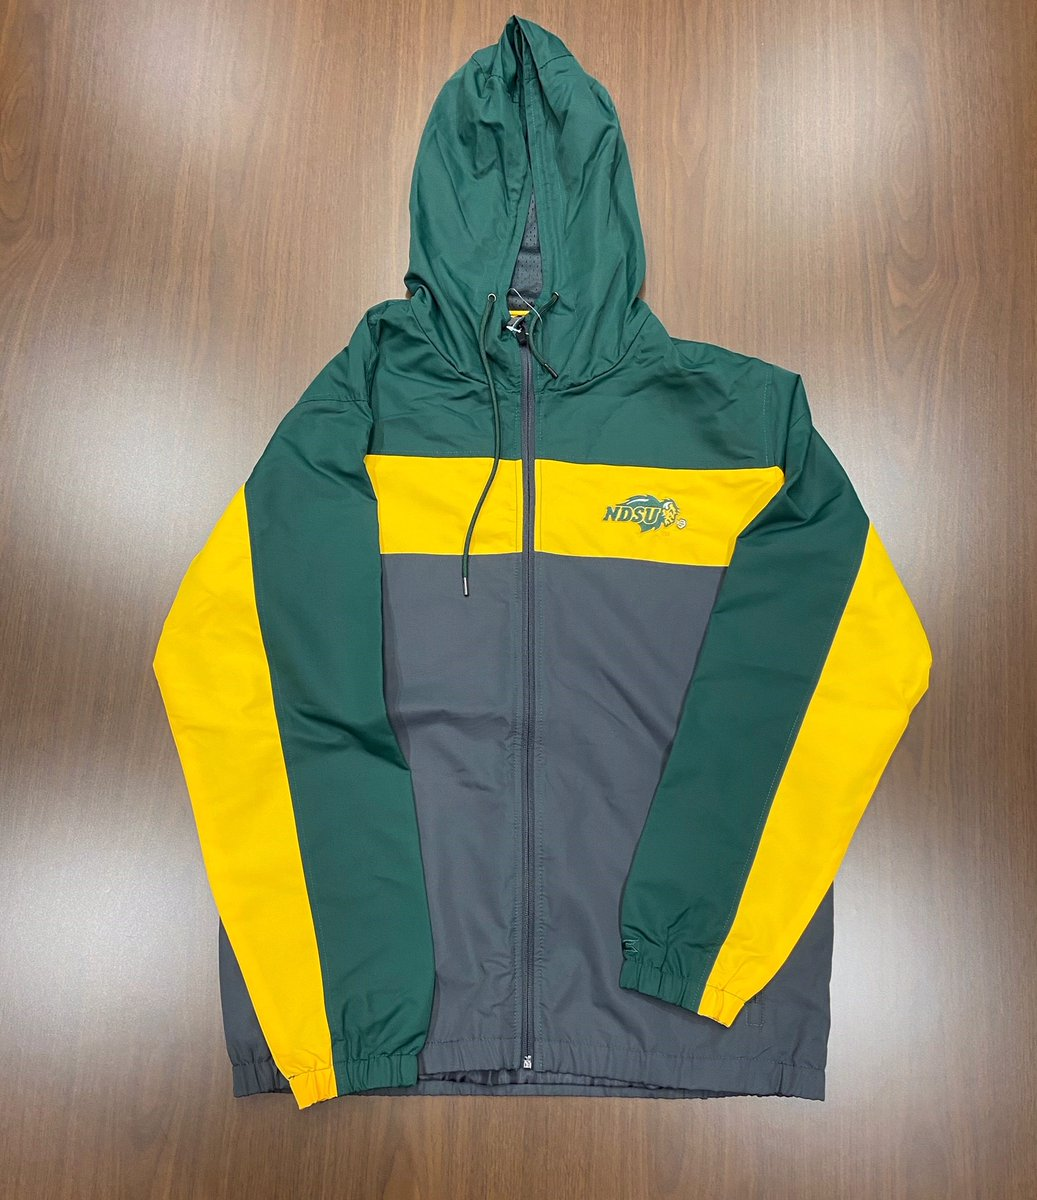 #FreeStuffFriday   Are you a Bison fan? Do you like free gear?   If you answered YES to both of those questions, check out the free gear up for this week's giveaway!   How to enter:  RETWEET post  LIKE post  FOLLOW @NDSUlicensing   Winner selected Monday!<br>http://pic.twitter.com/eaRgCAQCfP